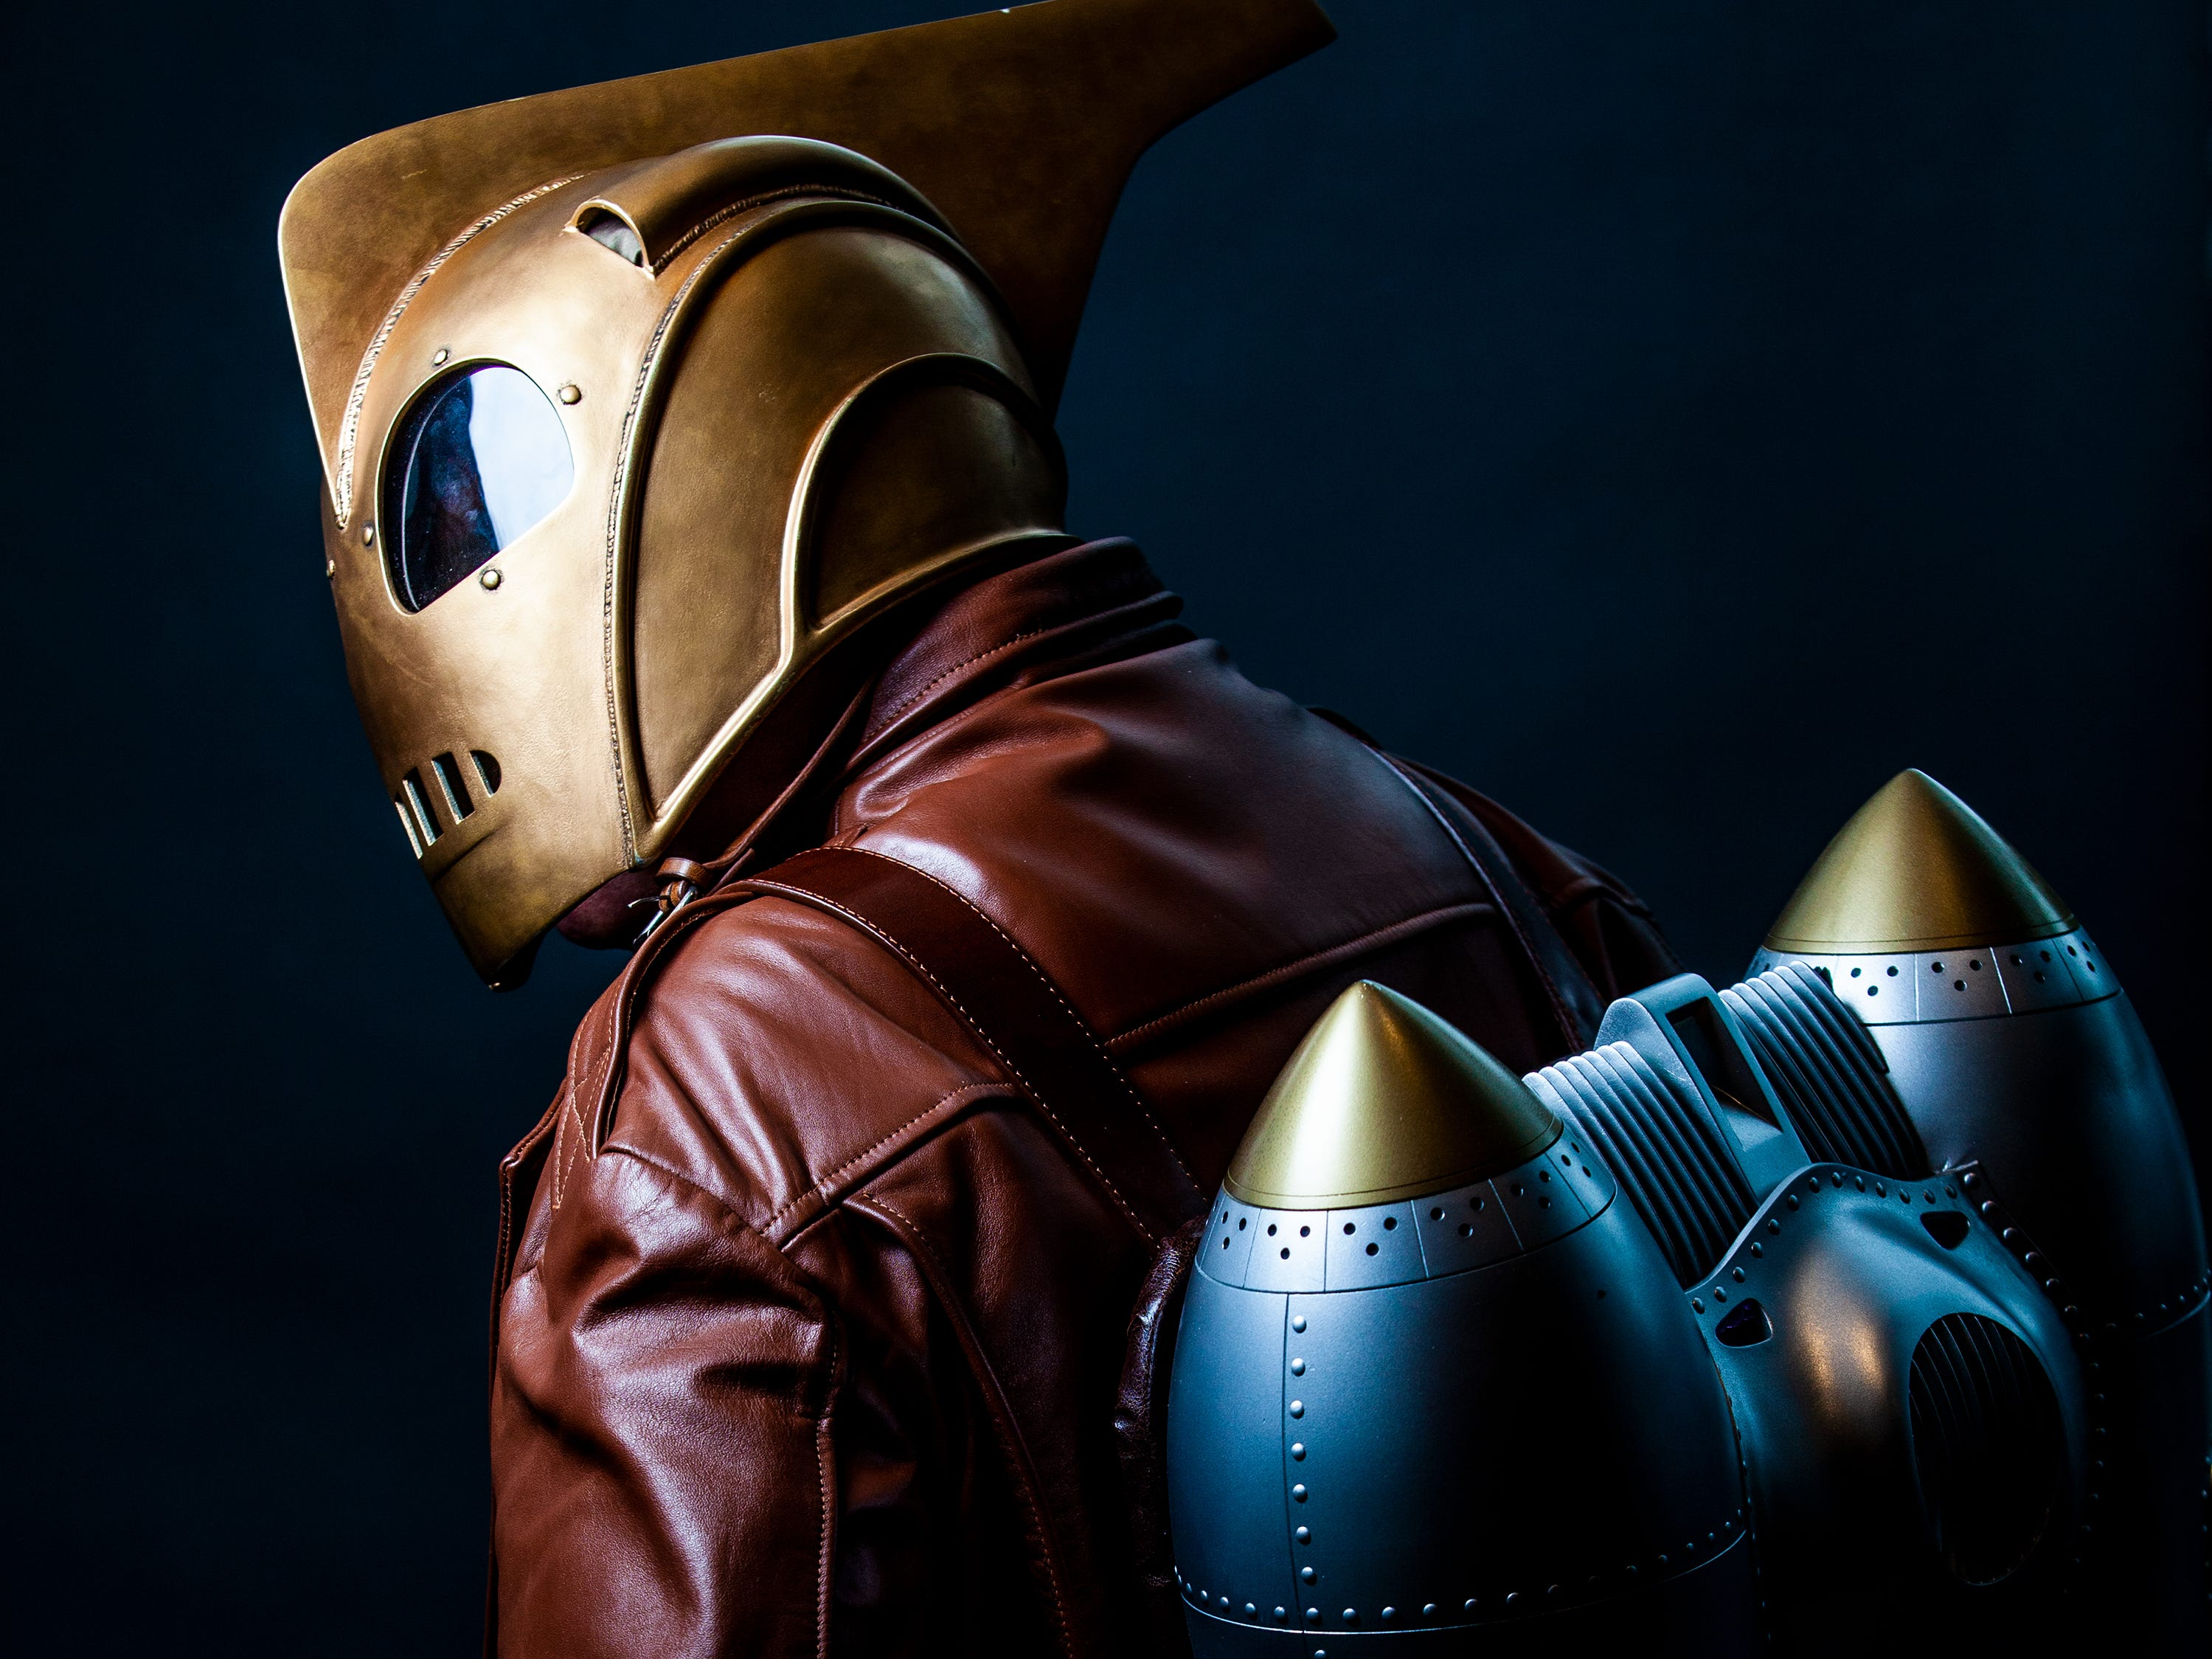 Bob Starks poses as Rocketeer for the Louisville Supercon at the Kentucky International Convention Center on Saturday, Dec. 1, 2018.